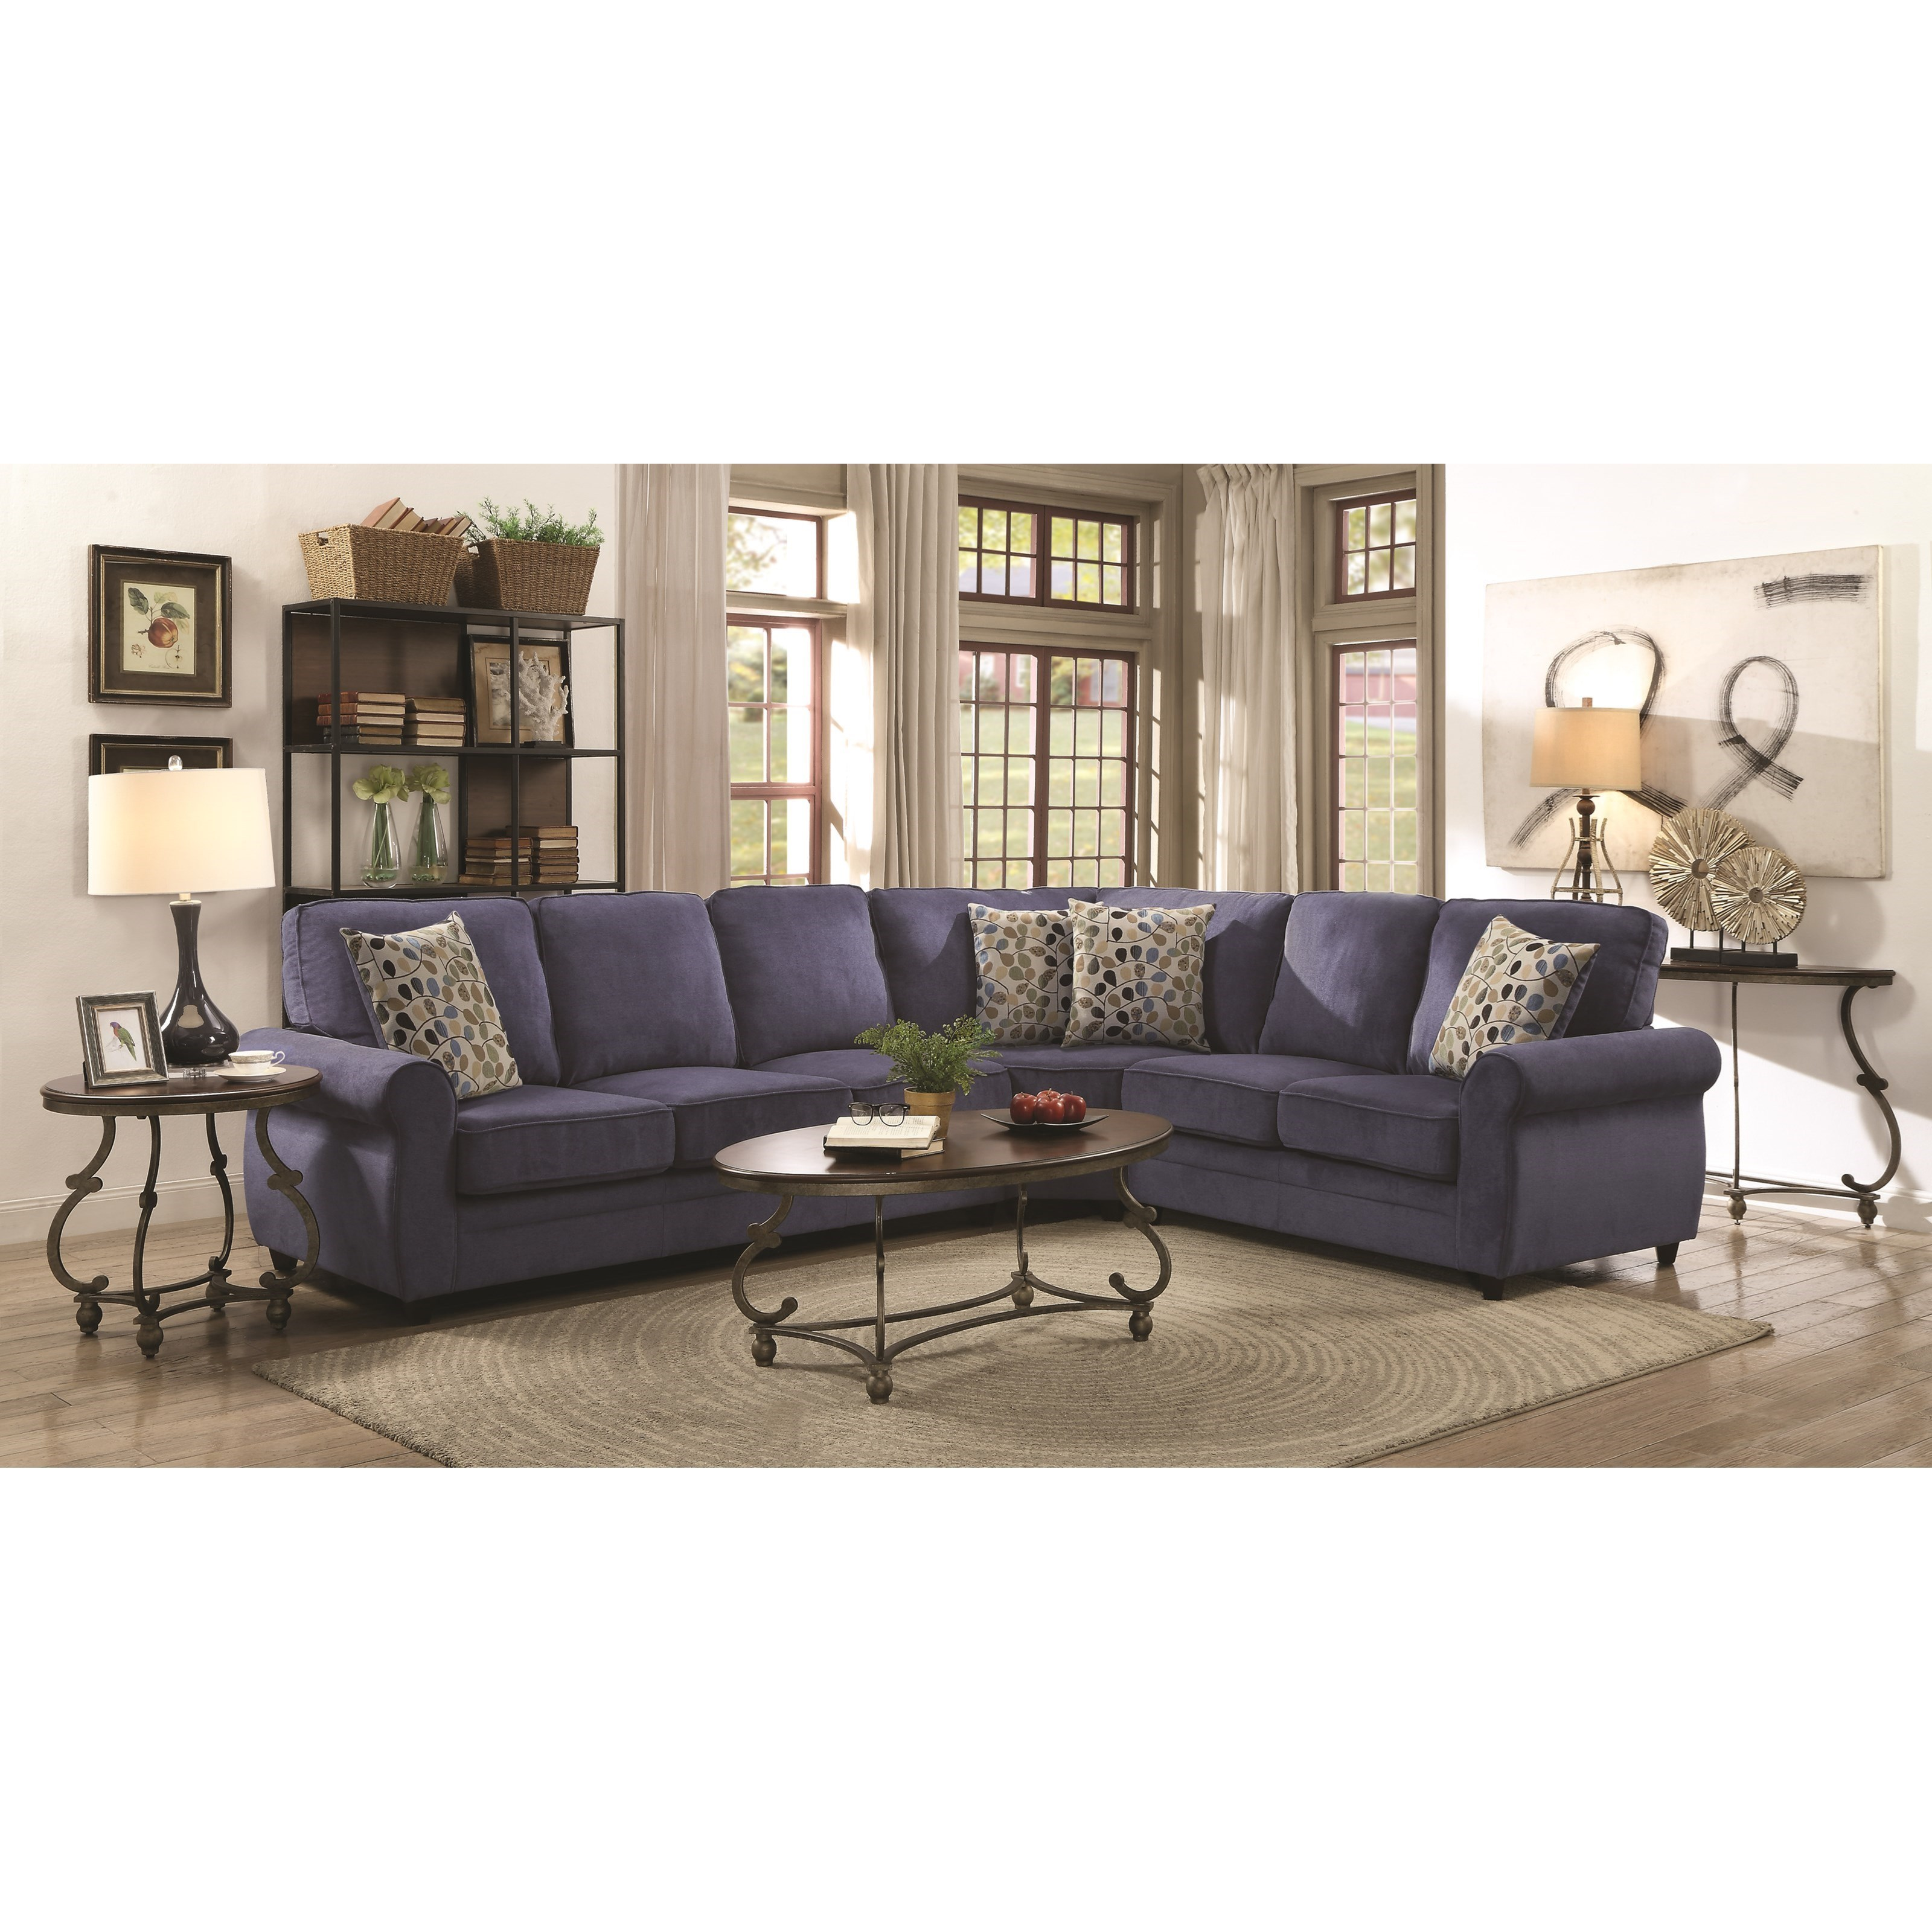 Coaster Kendrick 501545 Sectional With Memory Foam Sleeper   Miller Home   Sectional  Sofas